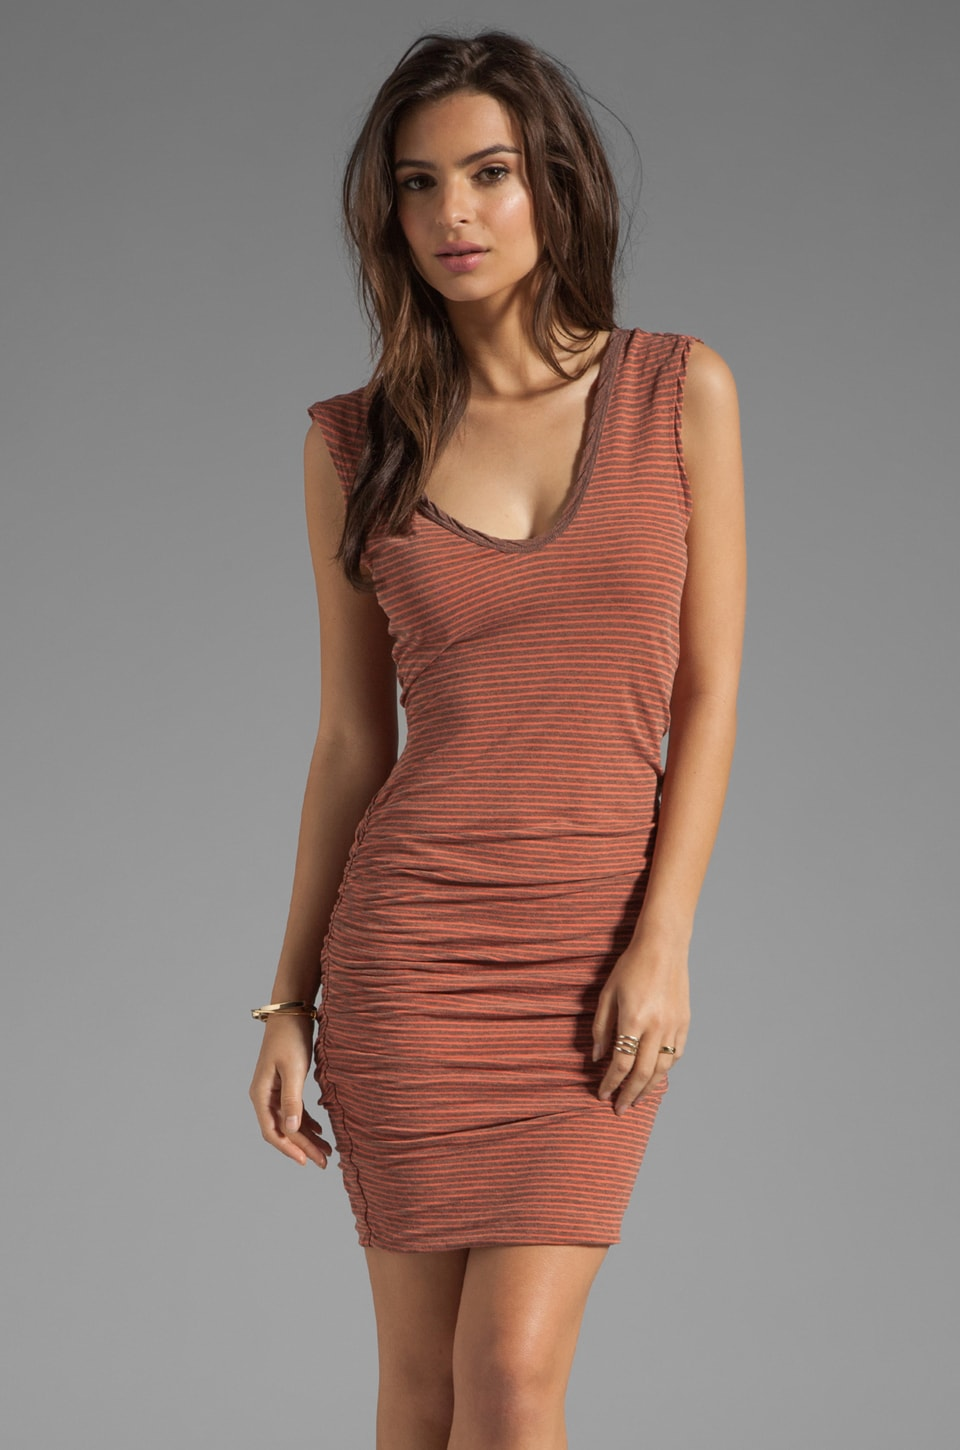 James Perse Stripe Double V Dress in Heather Grey/Orangeade